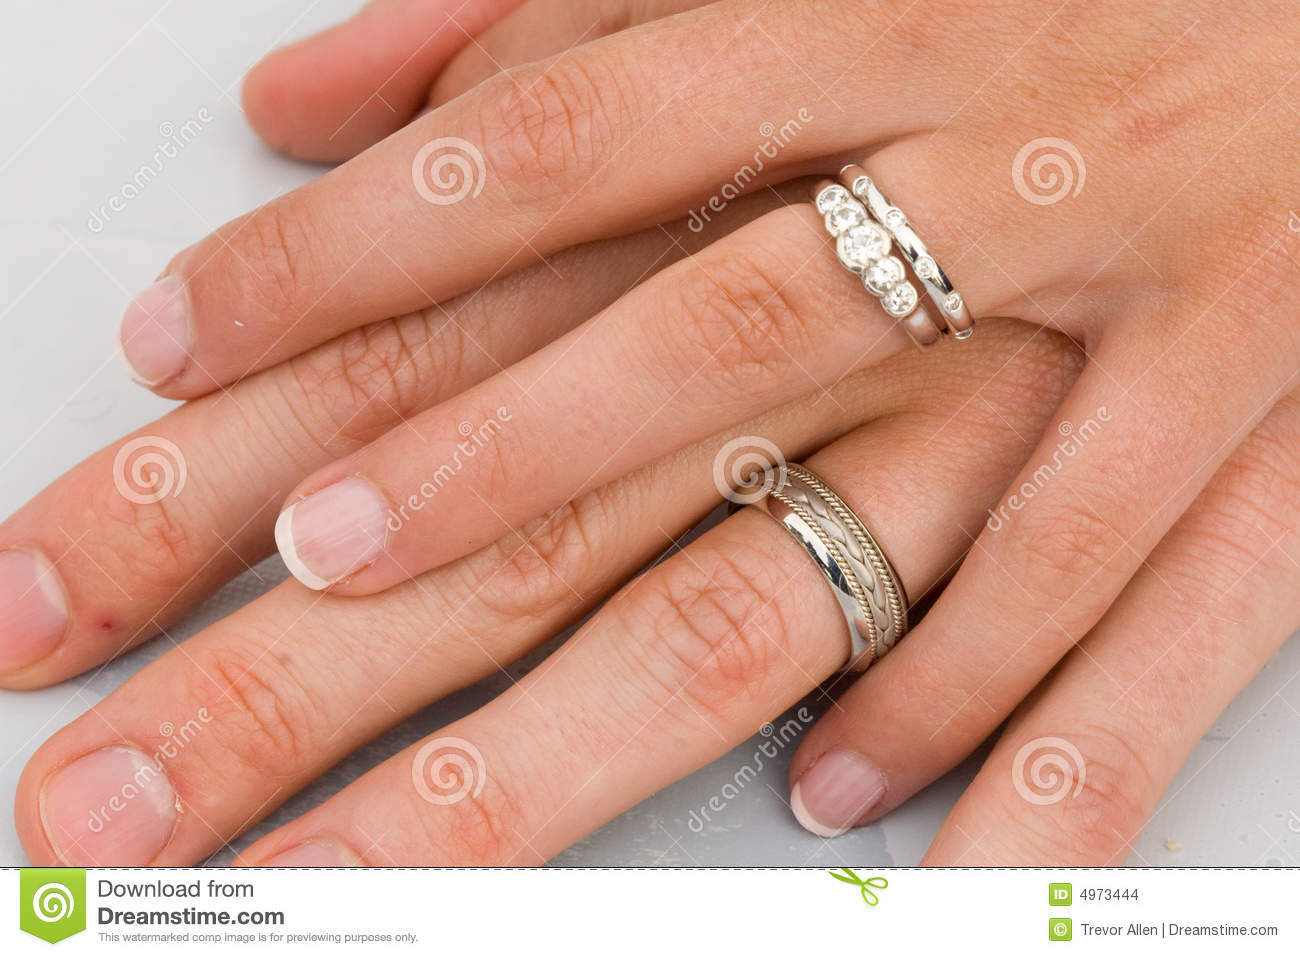 wedding rings on hands - Wedding Rings On Hands